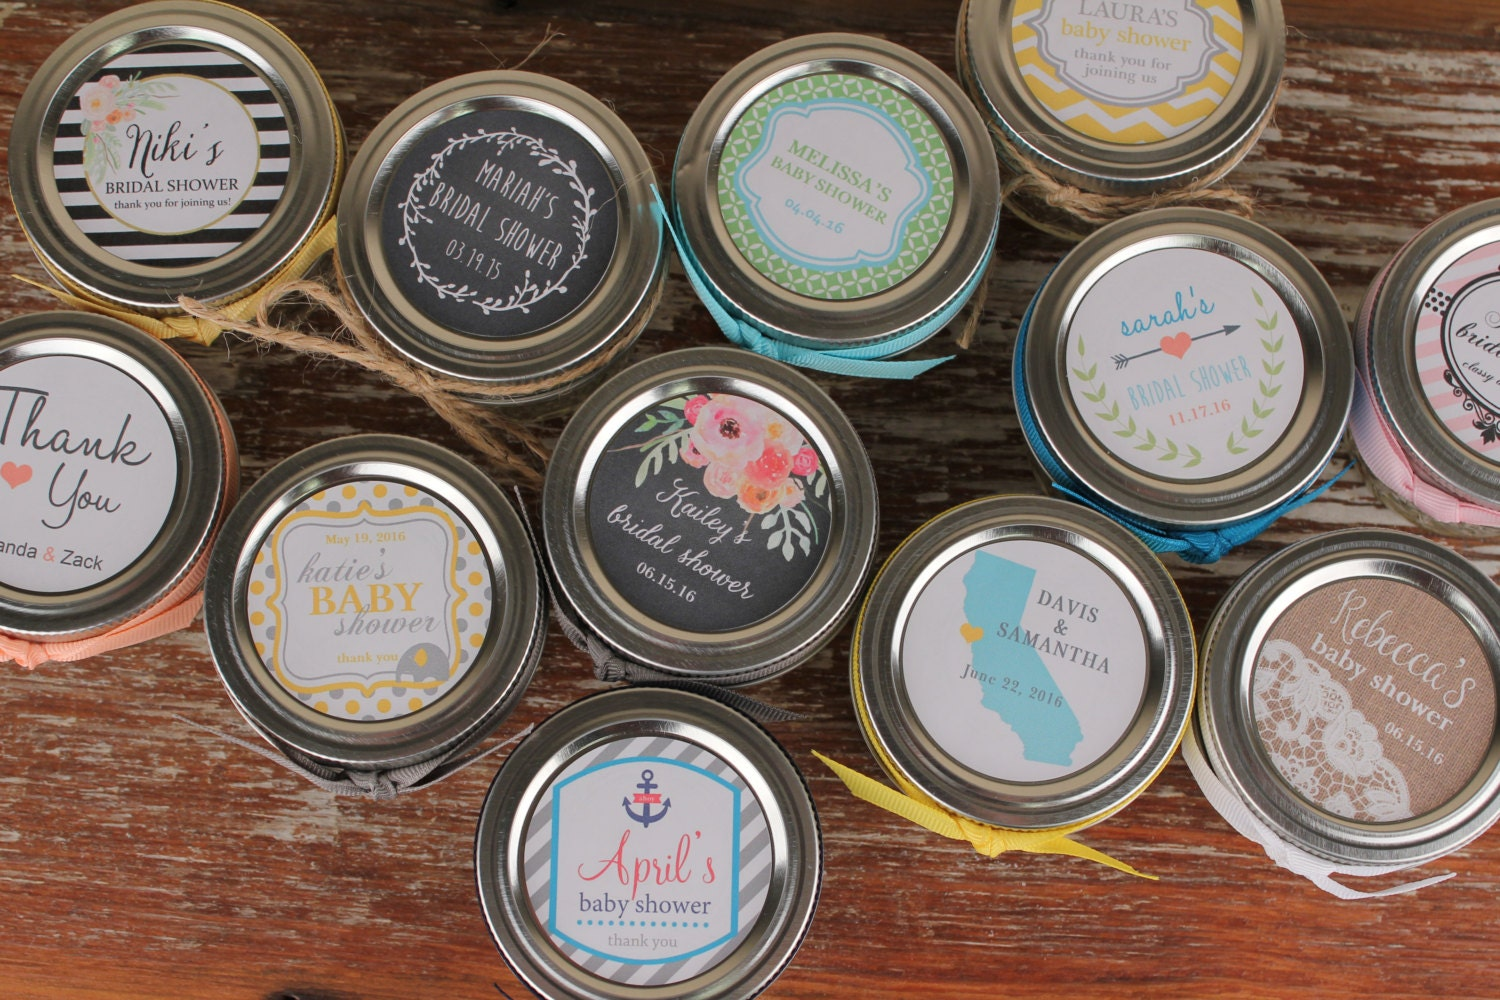 Mason Jar Labels Inch Round Labels Fit Oz Or Oz - 2 inch round label template